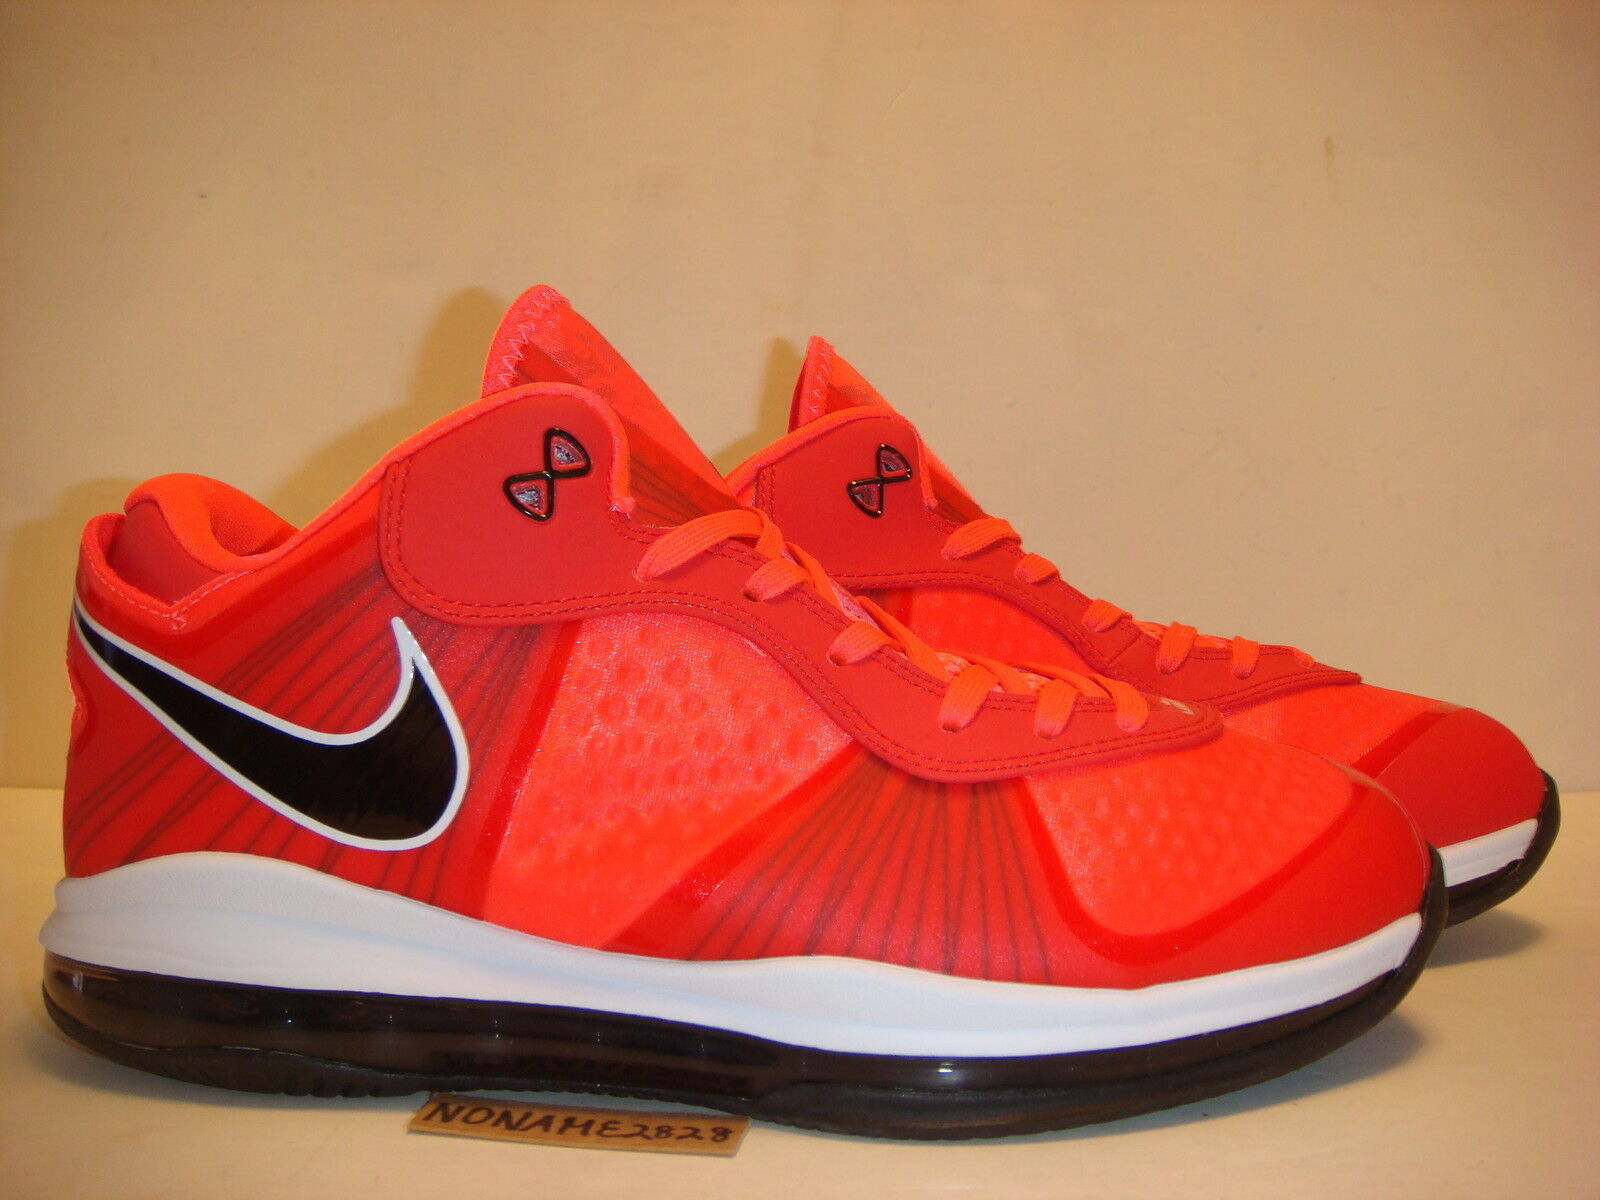 Nike lebron 8 v / 2 solare red galassia preriscalda south beach cork miami notte pe